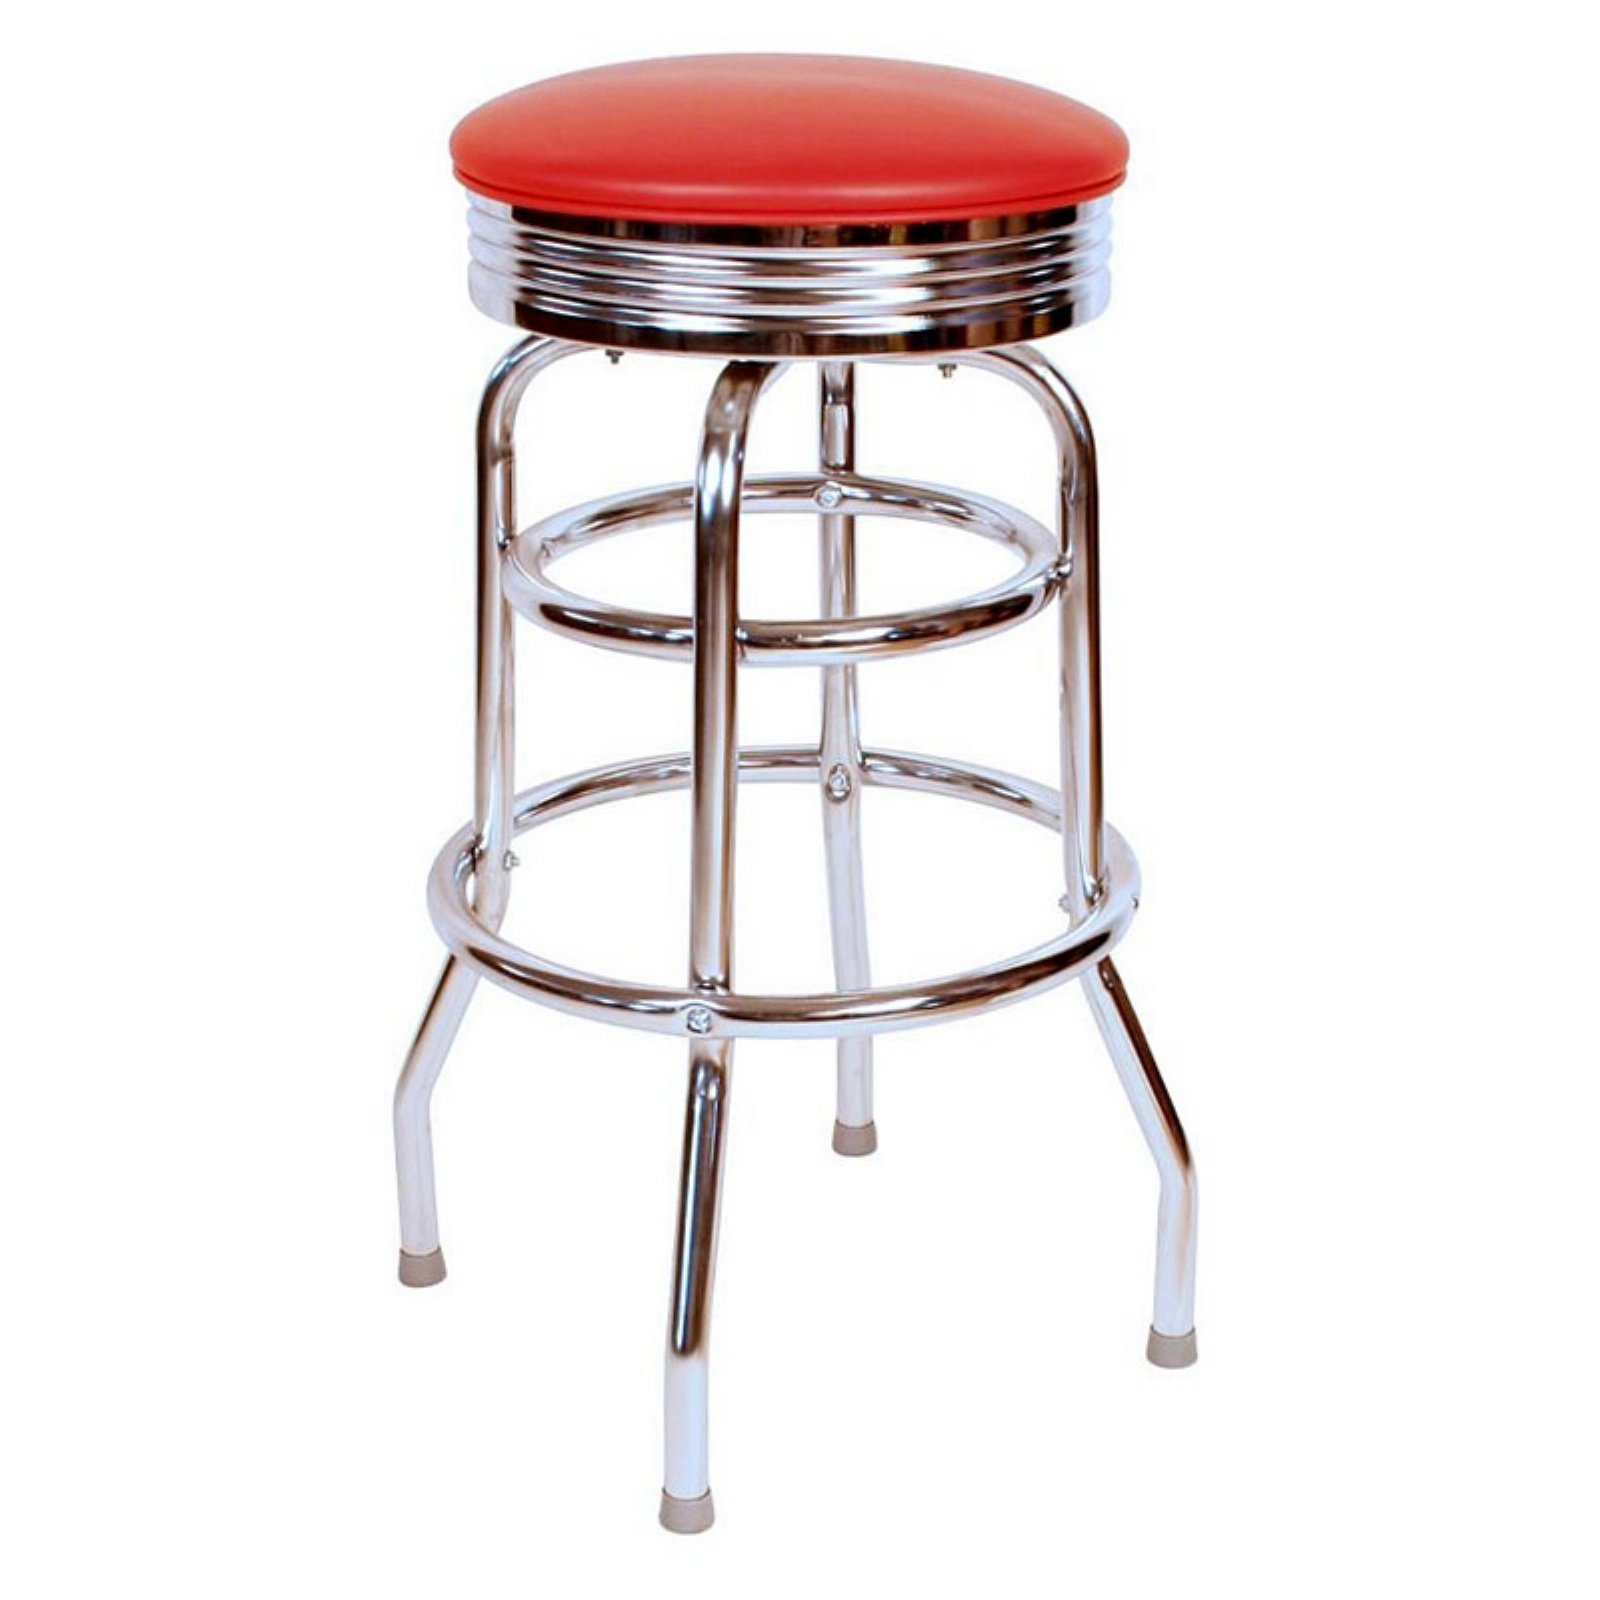 Richardson Seating Floridian 30 in. Retro Swivel Bar Stool